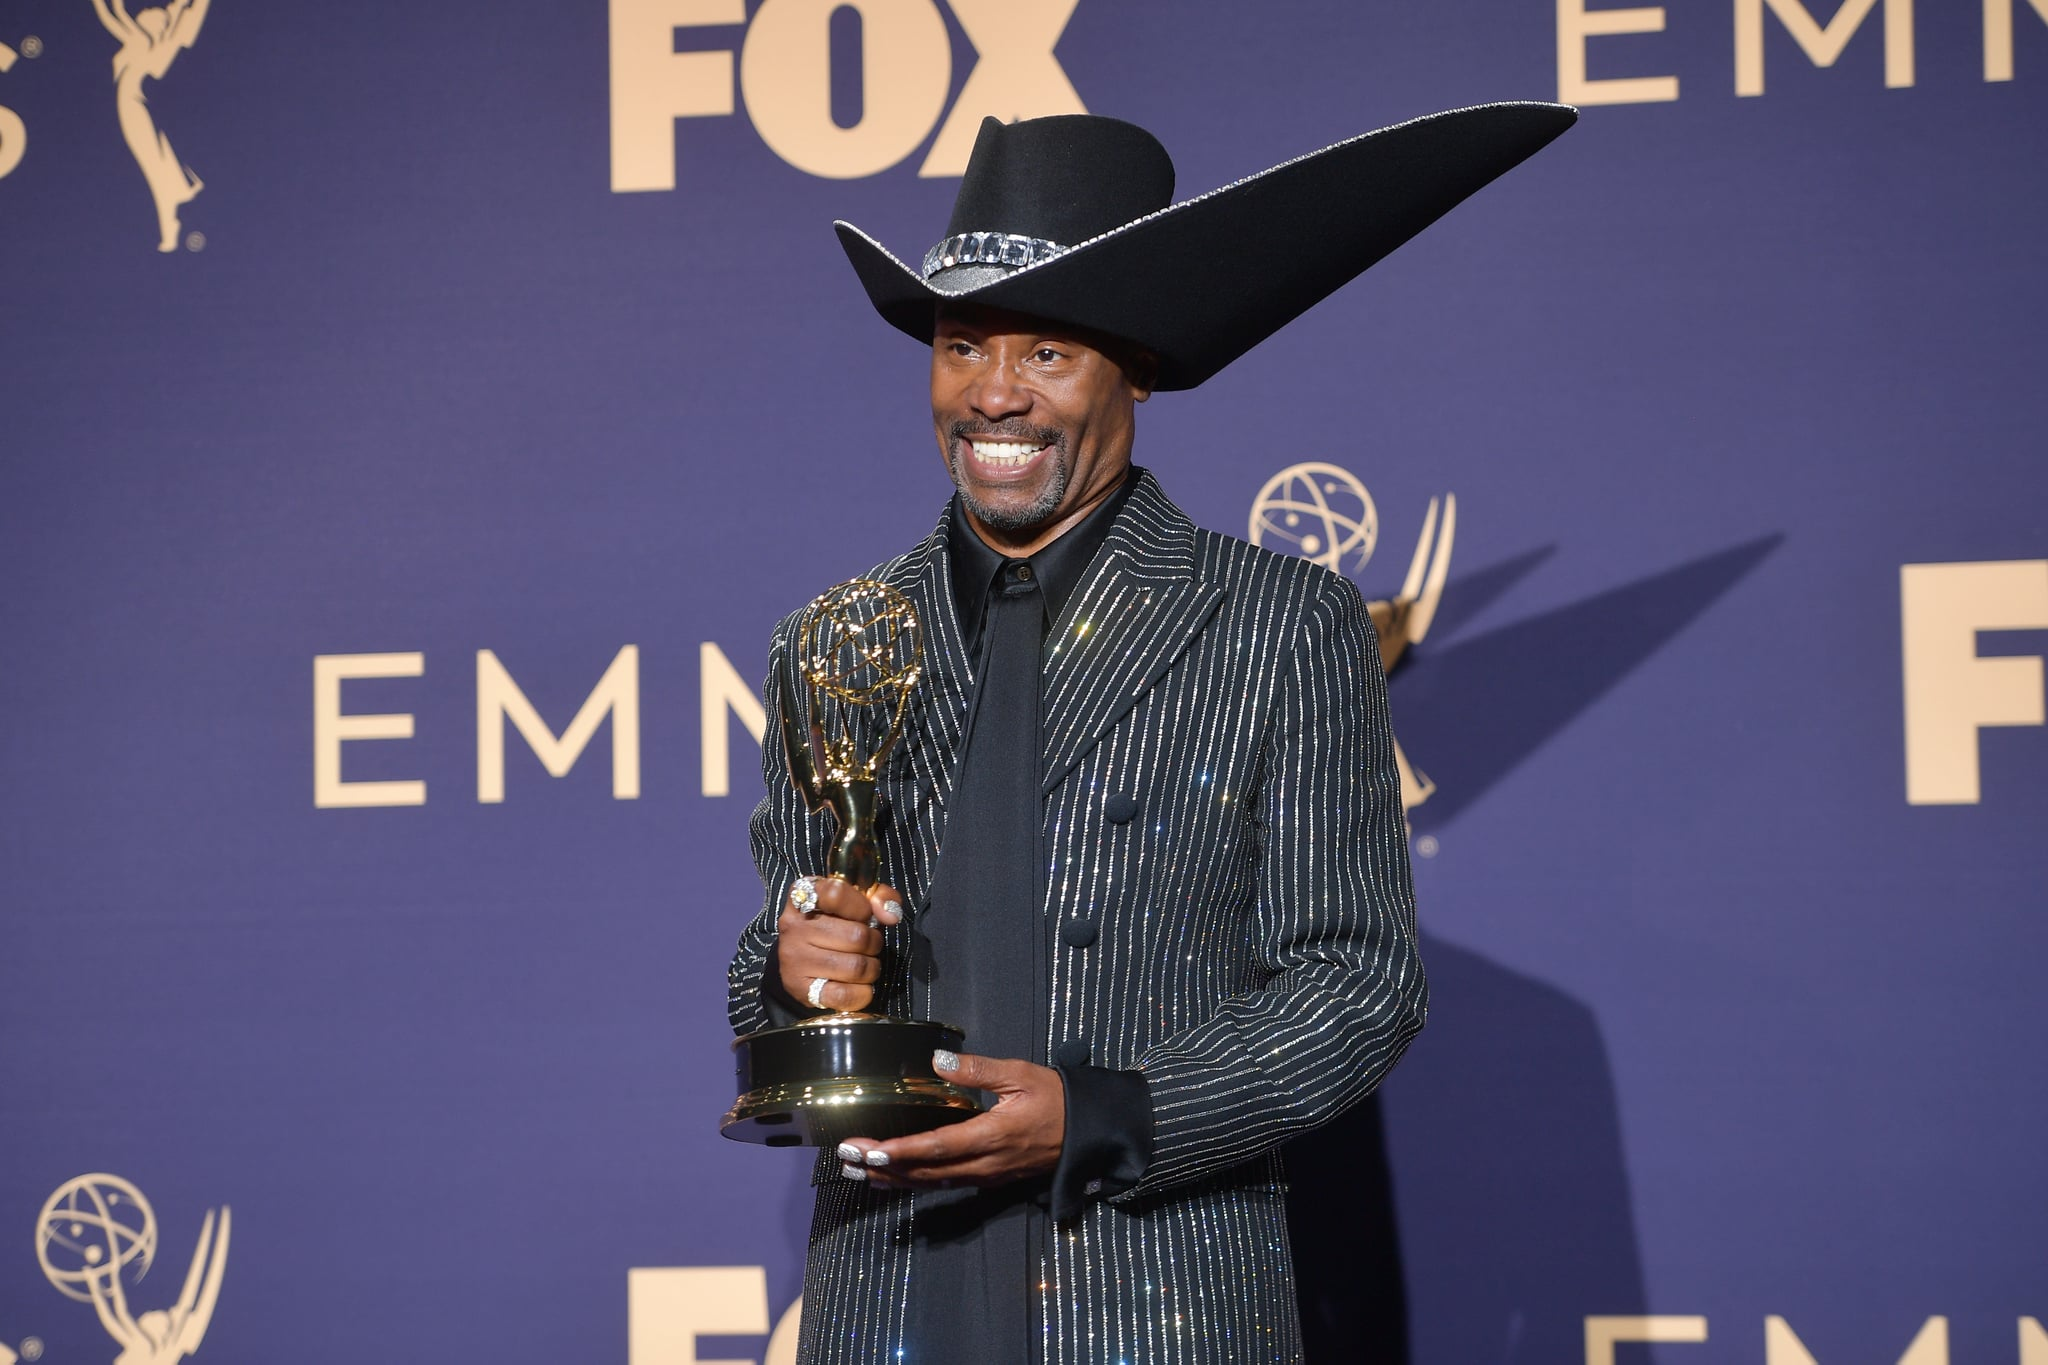 LOS ANGELES, CALIFORNIA - SEPTEMBER 22: Billy Porter poses with award for Outstanding Lead Actor in a Drama Series in the press room during the 71st Emmy Awards at Microsoft Theatre on September 22, 2019 in Los Angeles, California. (Photo by Matt Winkelmeyer/FilmMagic)